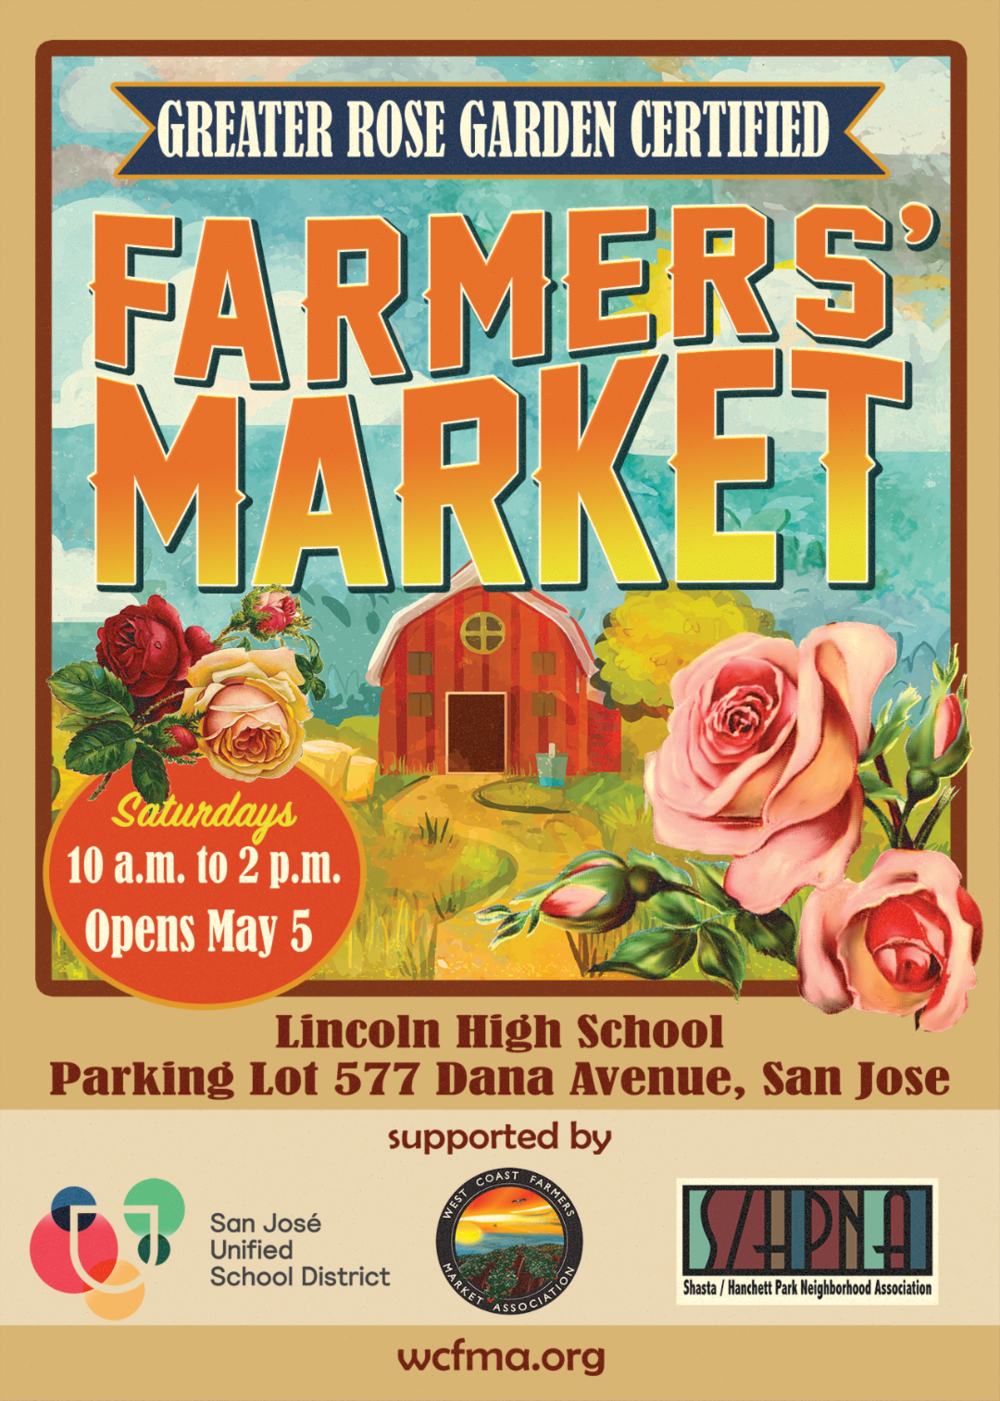 A new Farmers' Market comes to Midtown!  Every Saturday starting on May 5th you can get the freshest fruits and veggies right here in the Rose Garden.   -